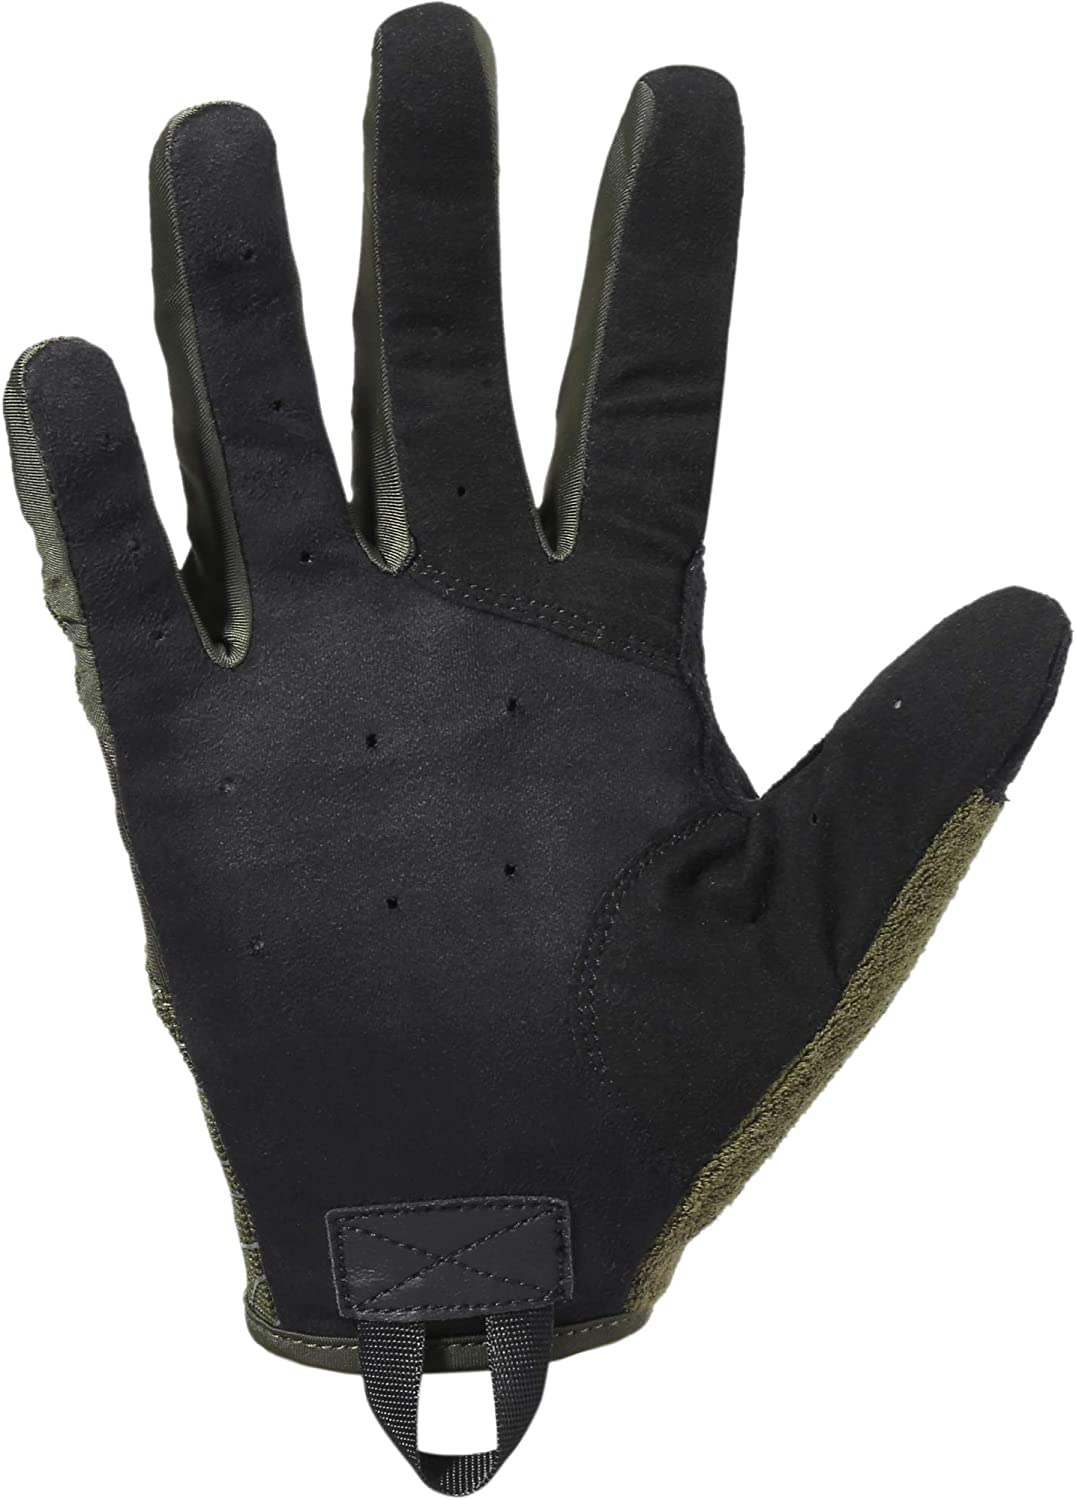 YOSUNPING Full Dexterity Tactical Gloves with Touch Screen